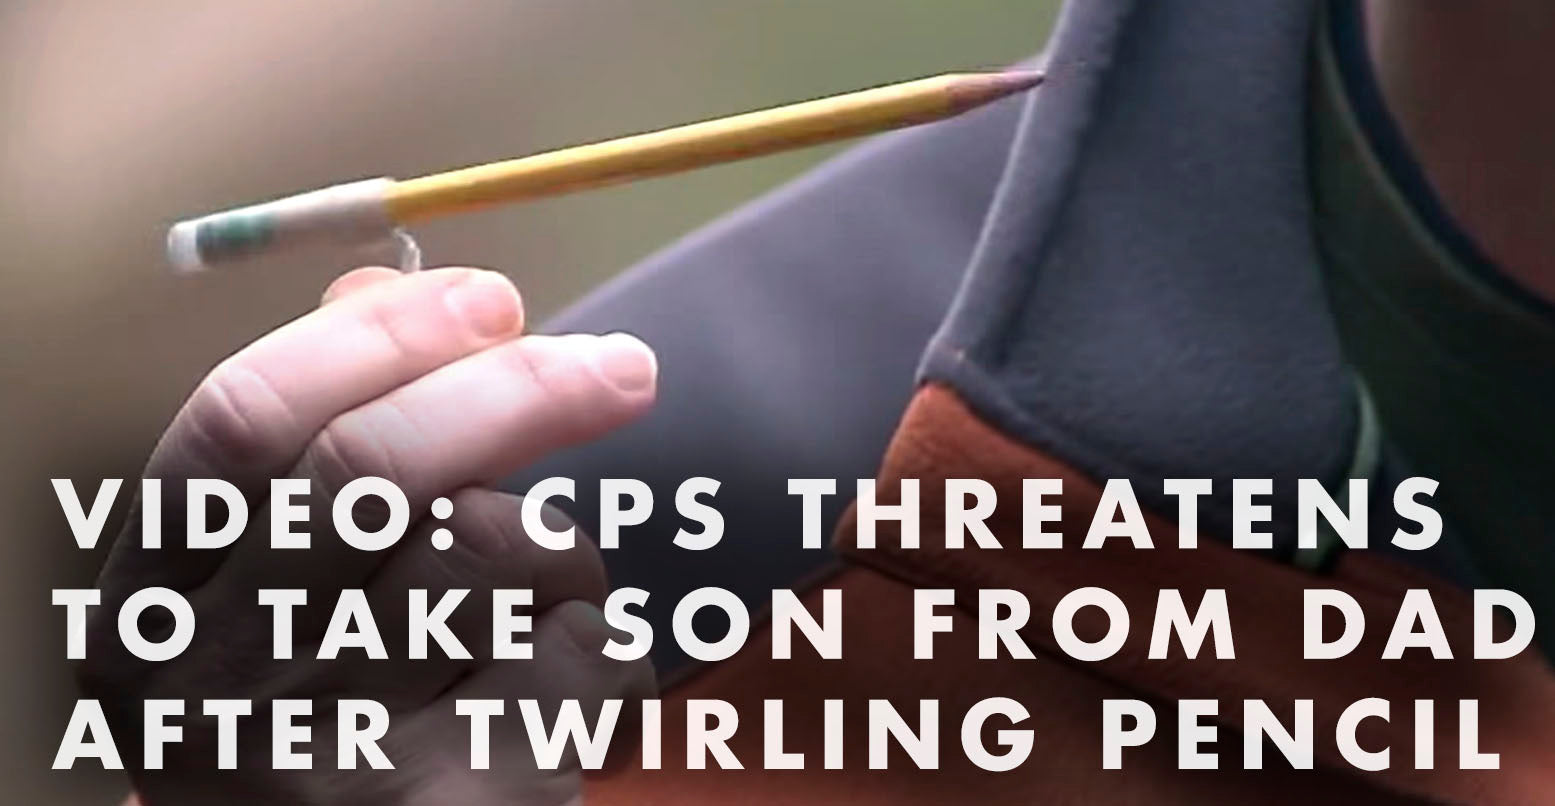 VIDEO: CPS Threatens To Take Son From Dad After Twirling Pencil